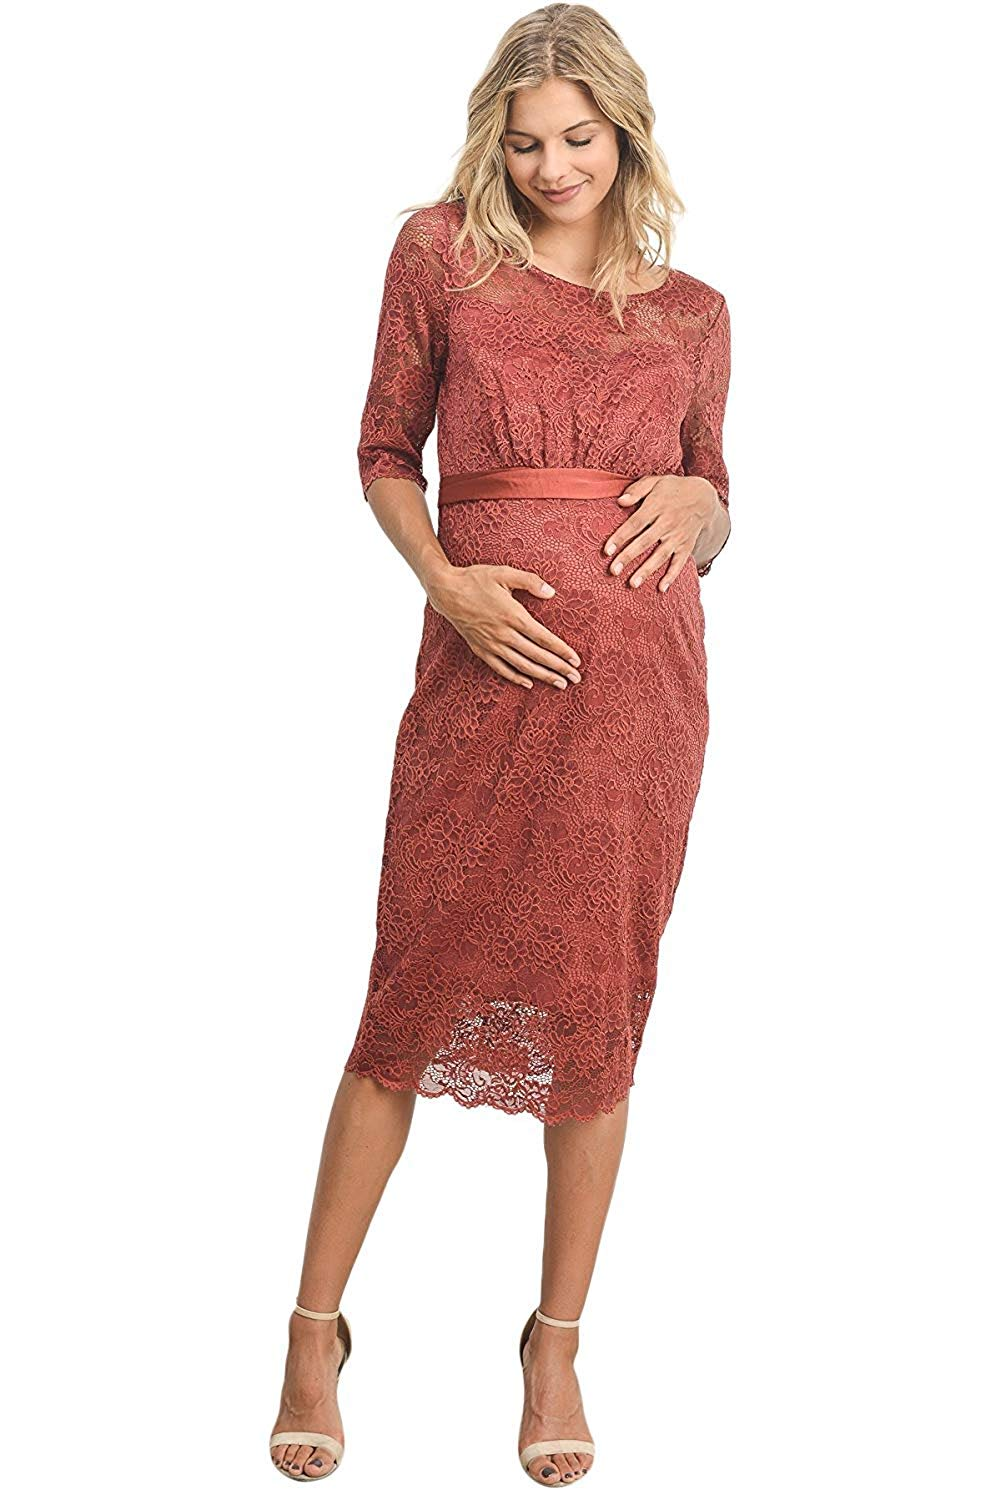 Floral Lace Maternity Dress Rust